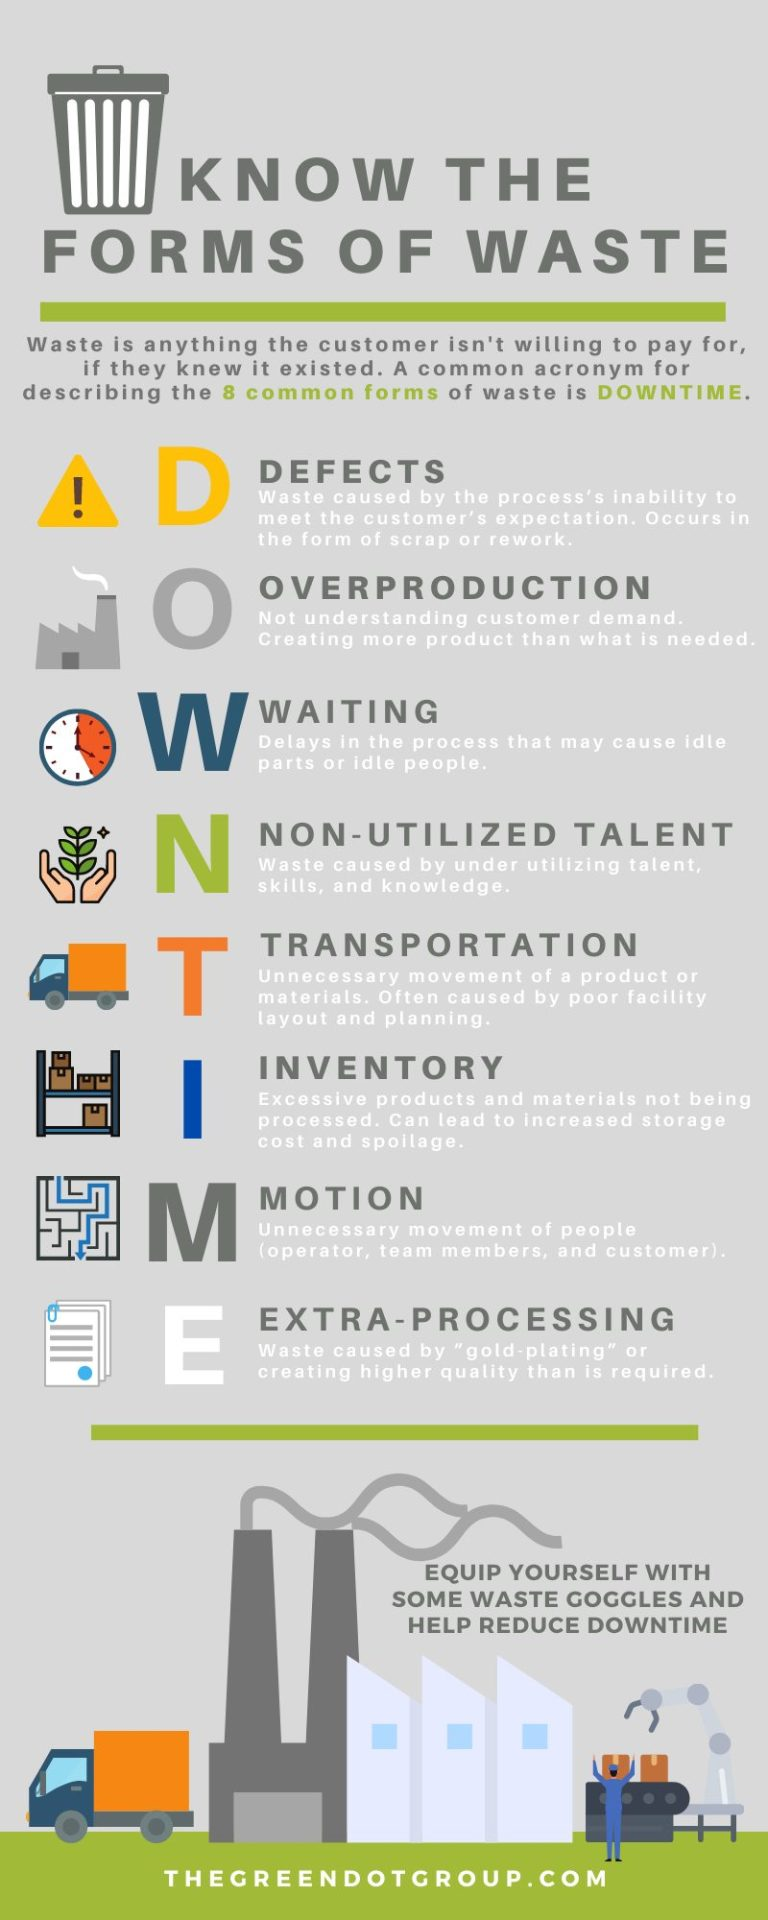 There are 8 forms of process waste that exist. A common acronym for summarizing the different types of waste is DOWNTIME. DOWNTIME stands for defects, overproduction, waiting, non-utilized talent, transportation, inventory, motion, and extra-processing